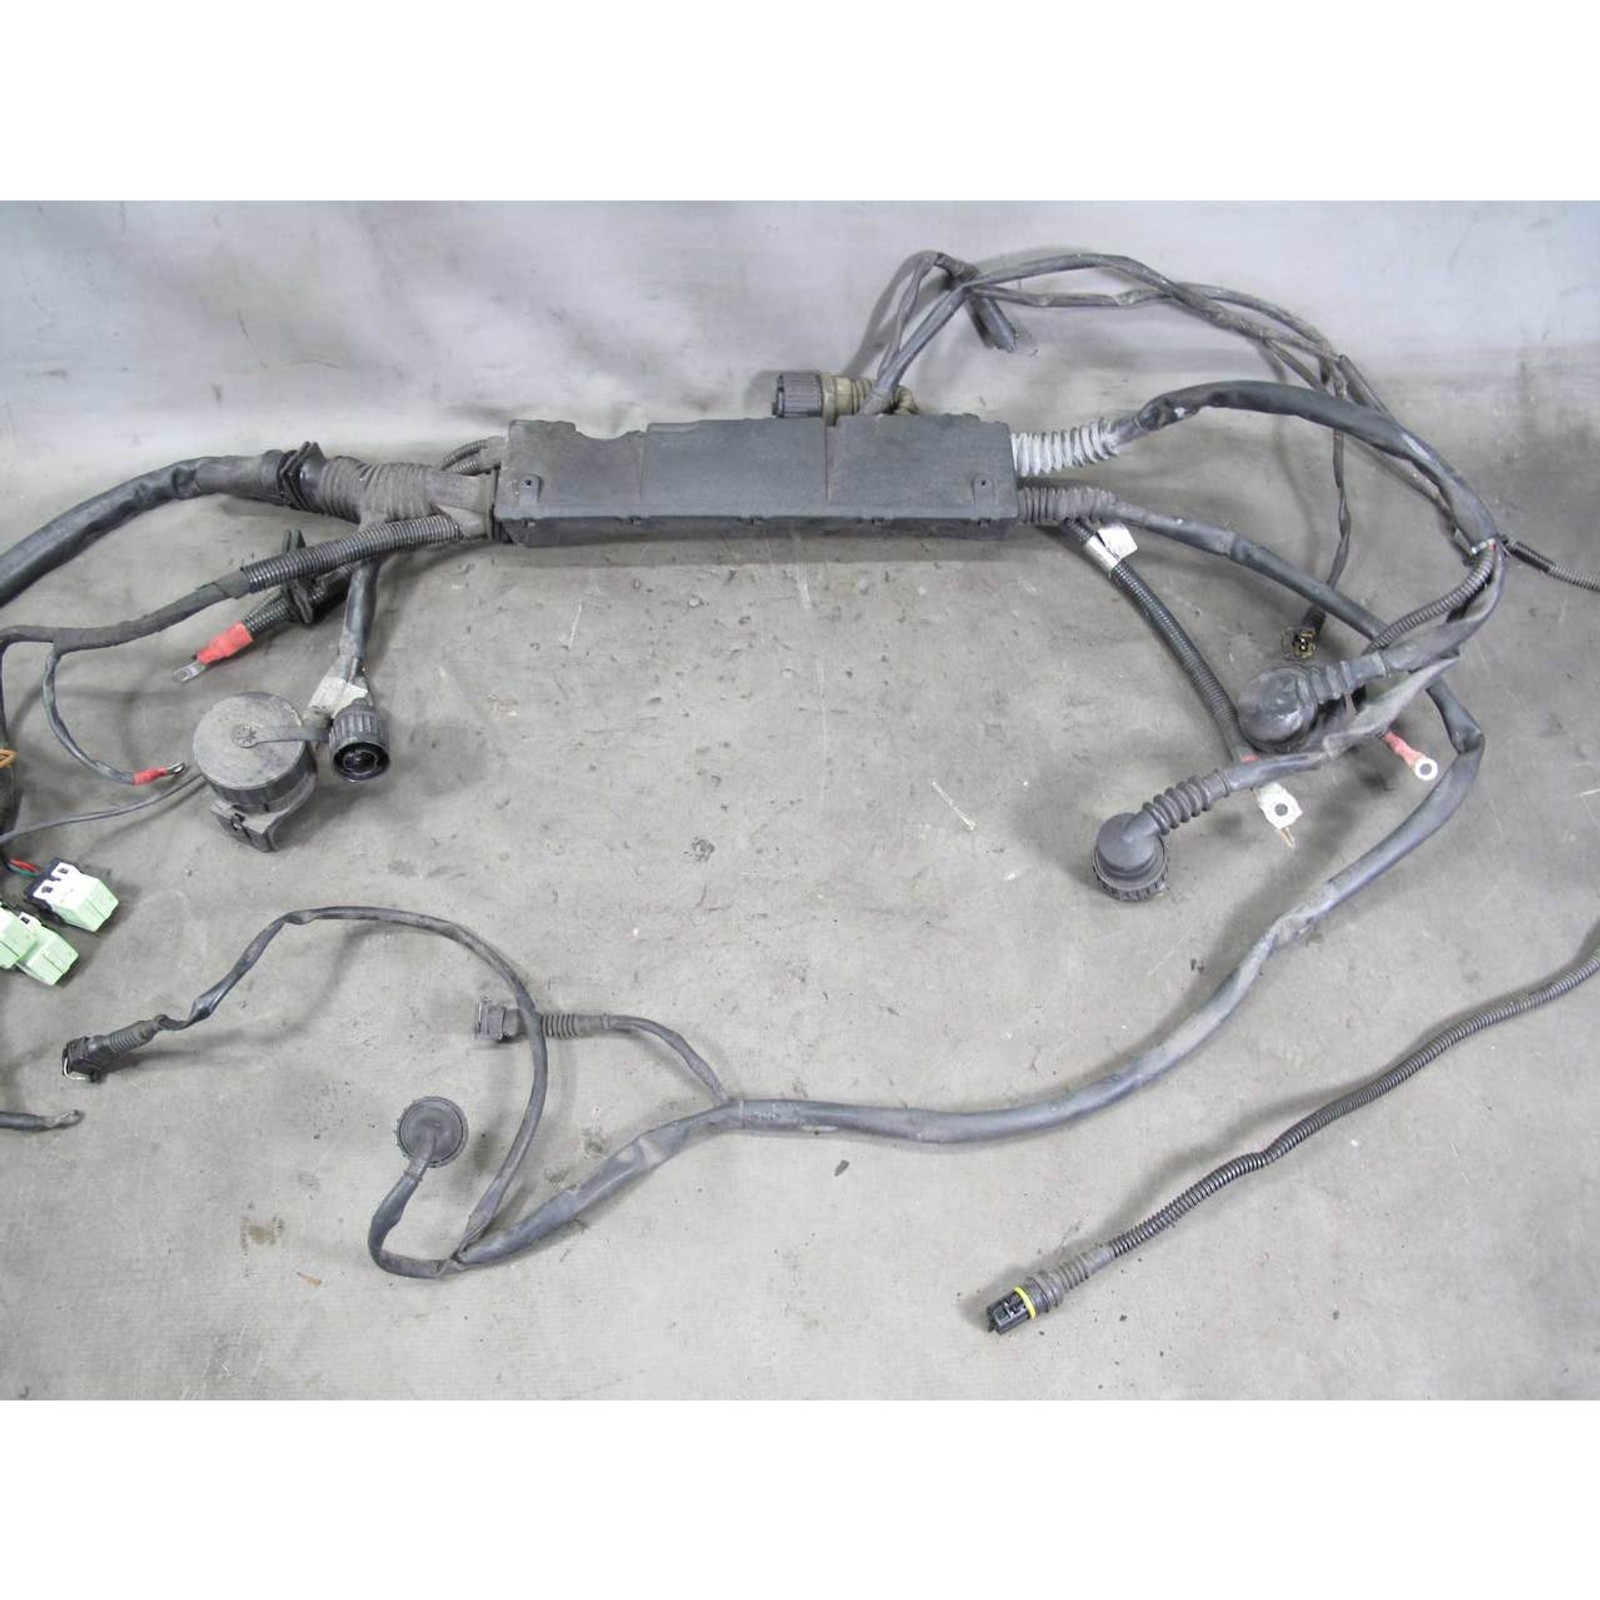 small resolution of 1996 bmw z3 1 9 roadster m44 4 cyl engine wiring harness used oem 1996 bmw